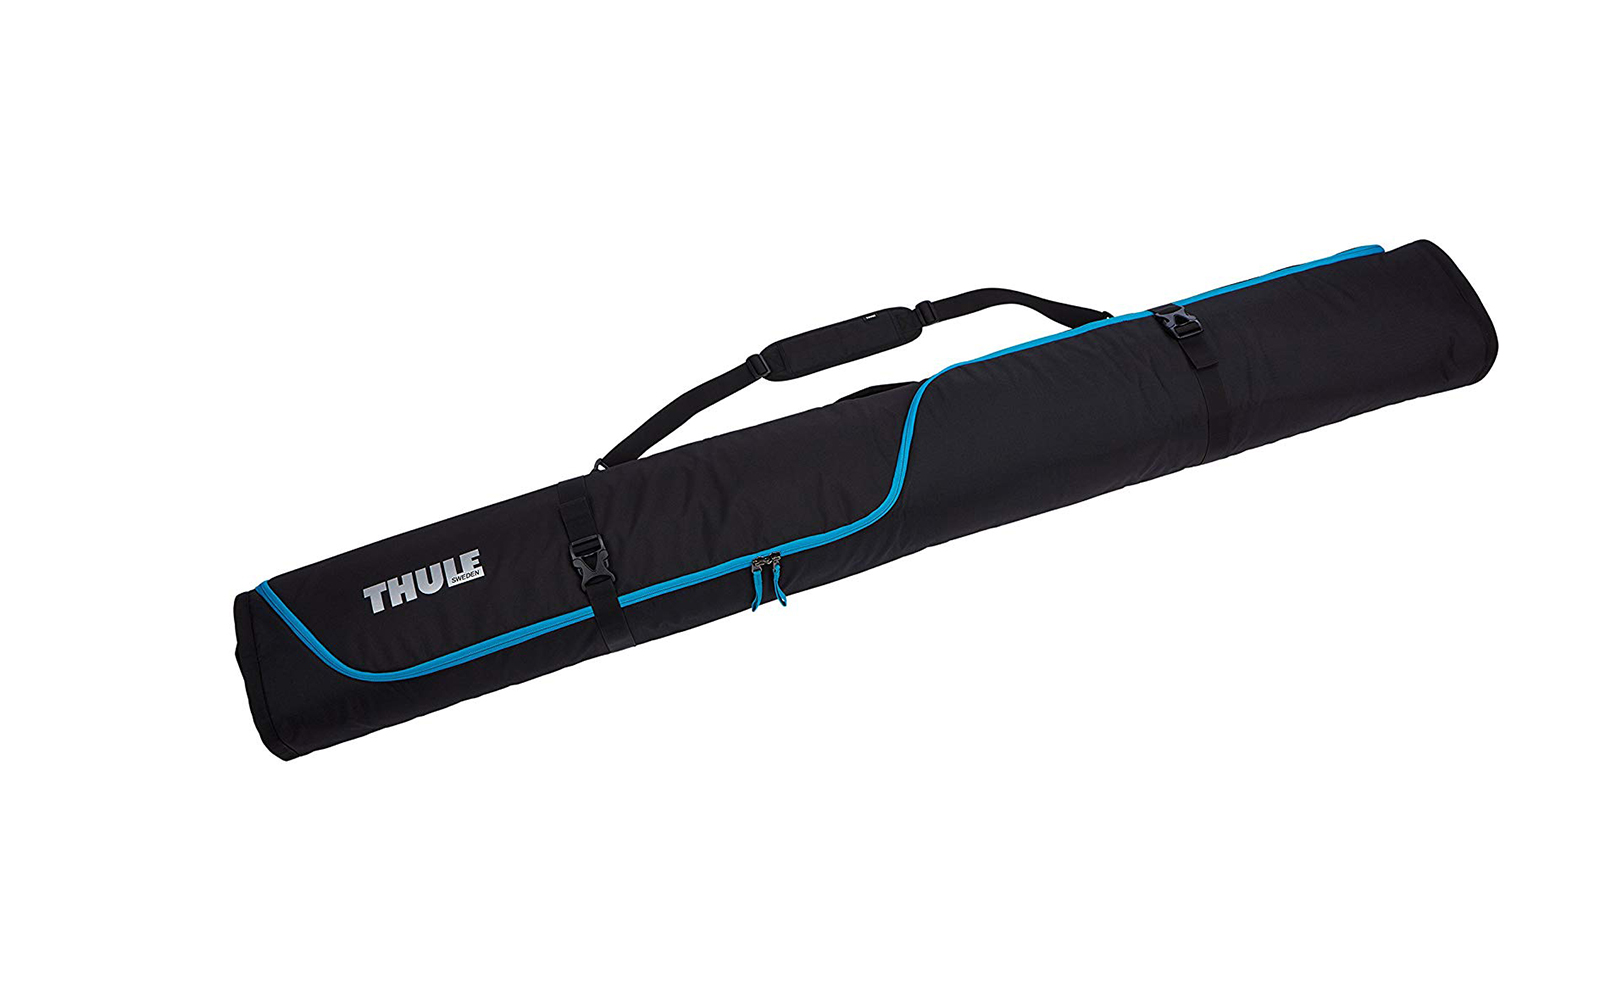 Thule RoundTrip Ski Bag, Black